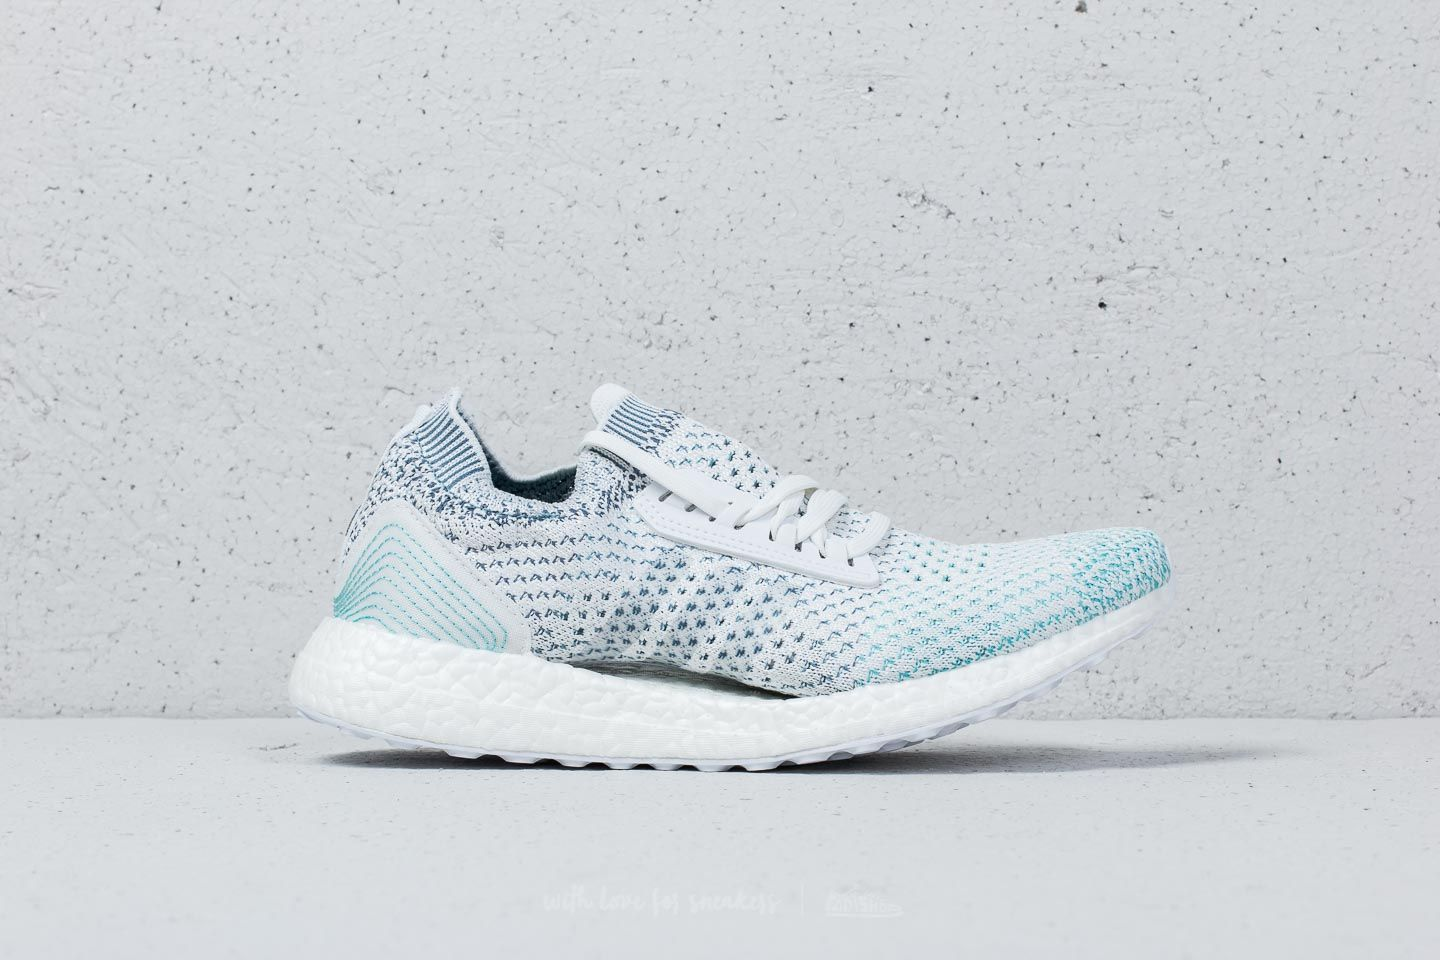 adidas Ultraboost x Parley LTD Ftw White  Ftw White  Blue Spirit at a great 2277d4511